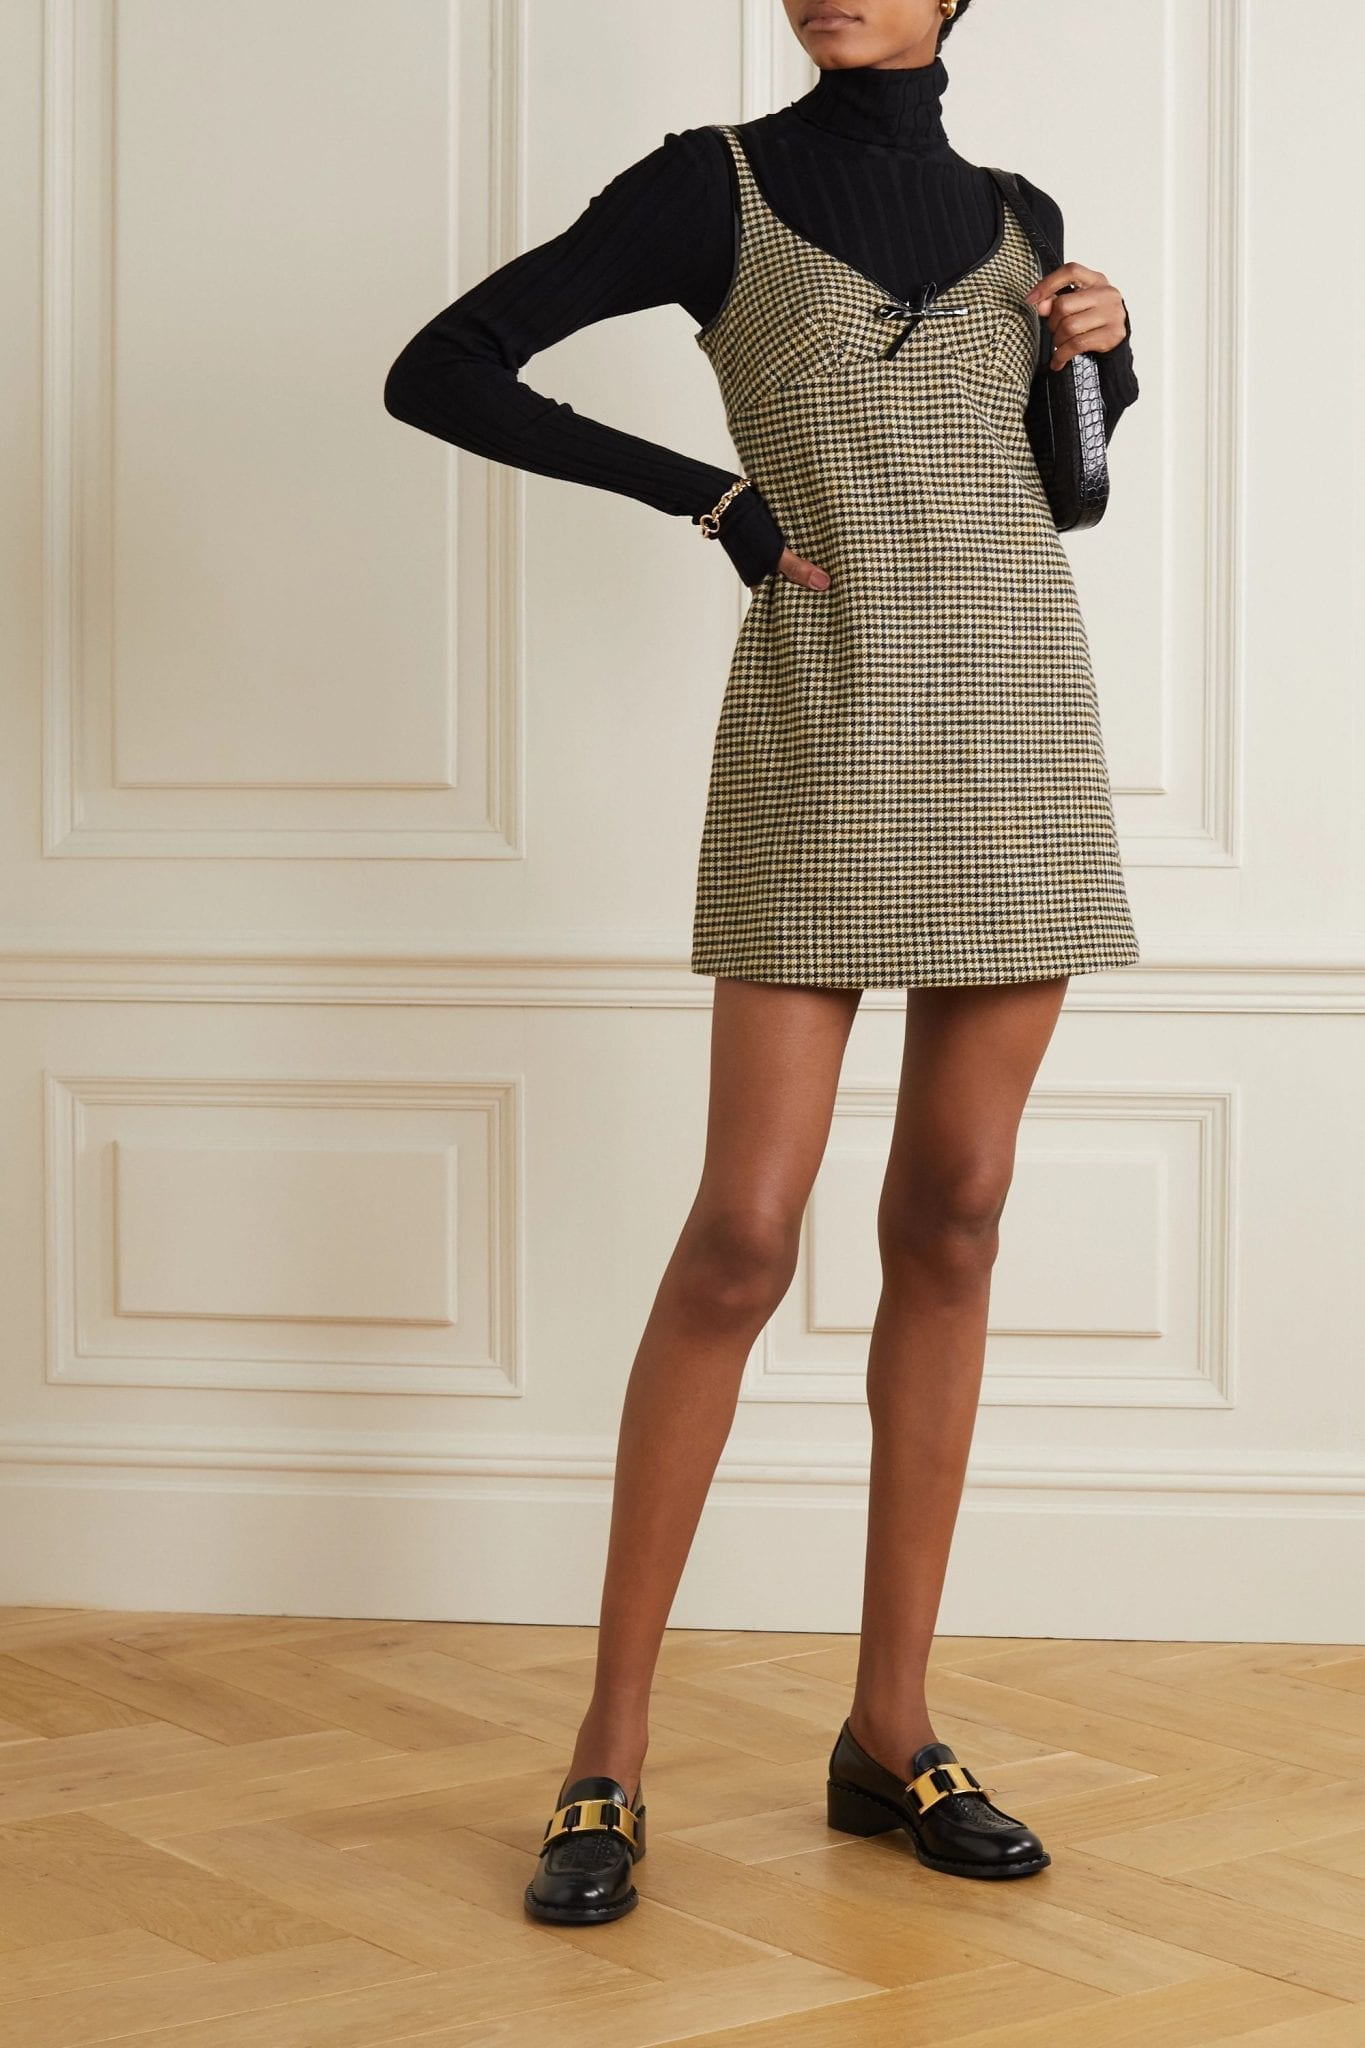 ALEXACHUNG Edwige Faux Patent Leather-trimmed Houndstooth Tweed Mini Dress